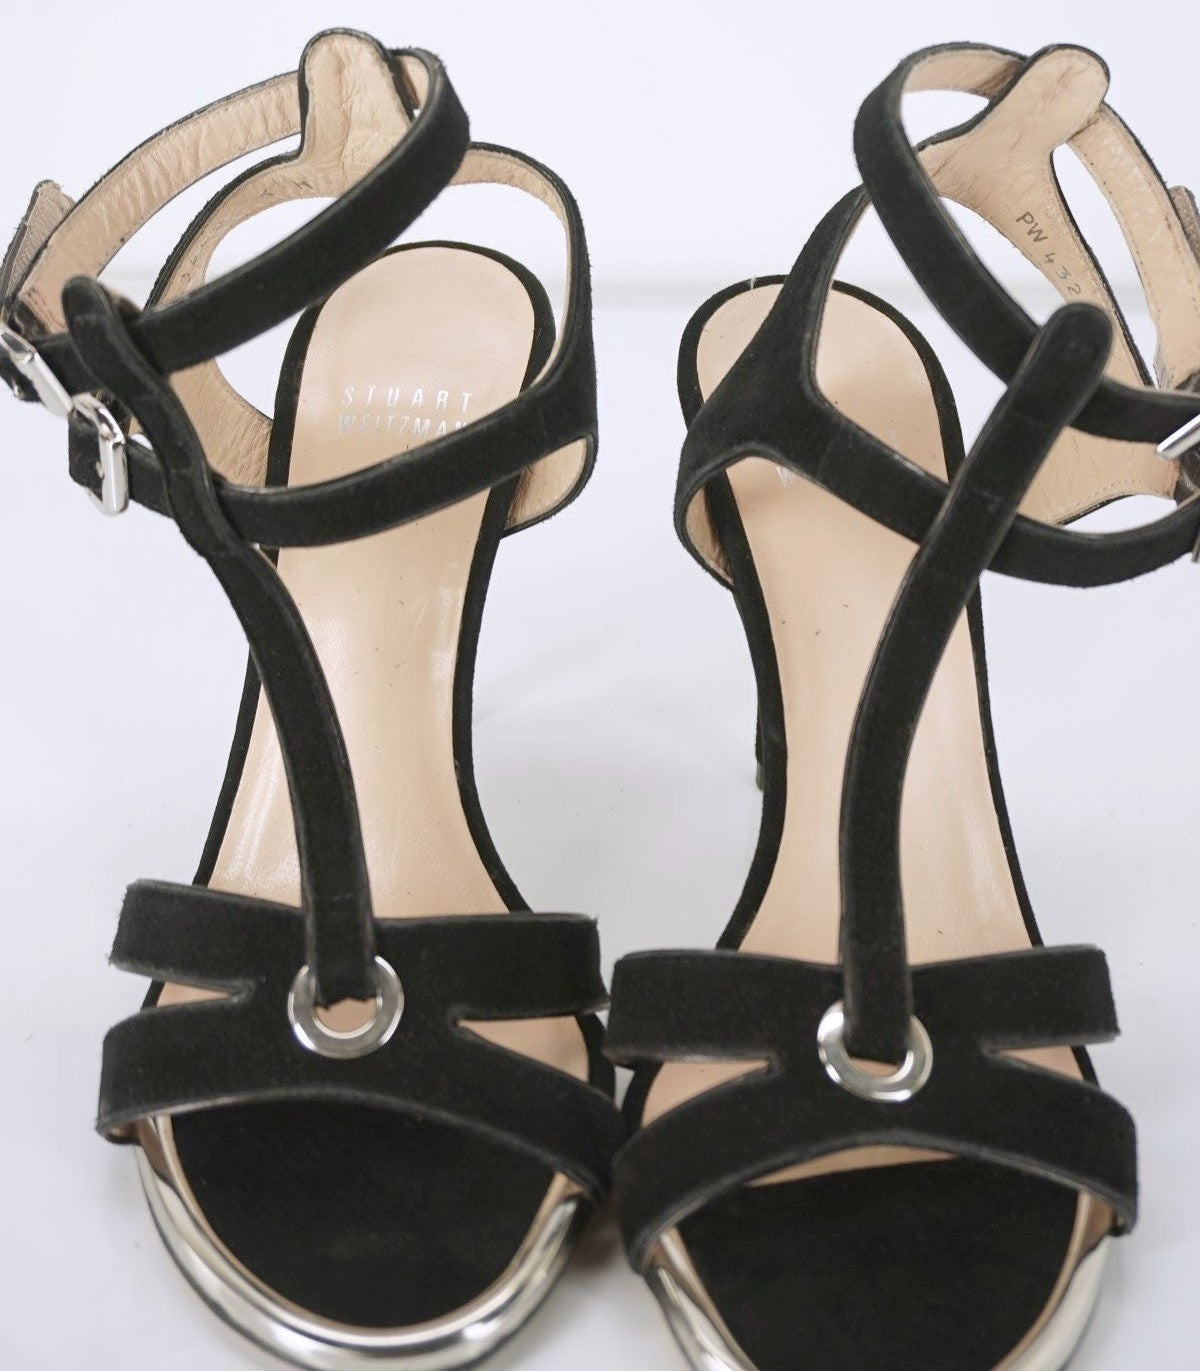 Stuart Weitzman Black Suede Accent T Strap Sandals SZ 6 High Heel Caged New $395